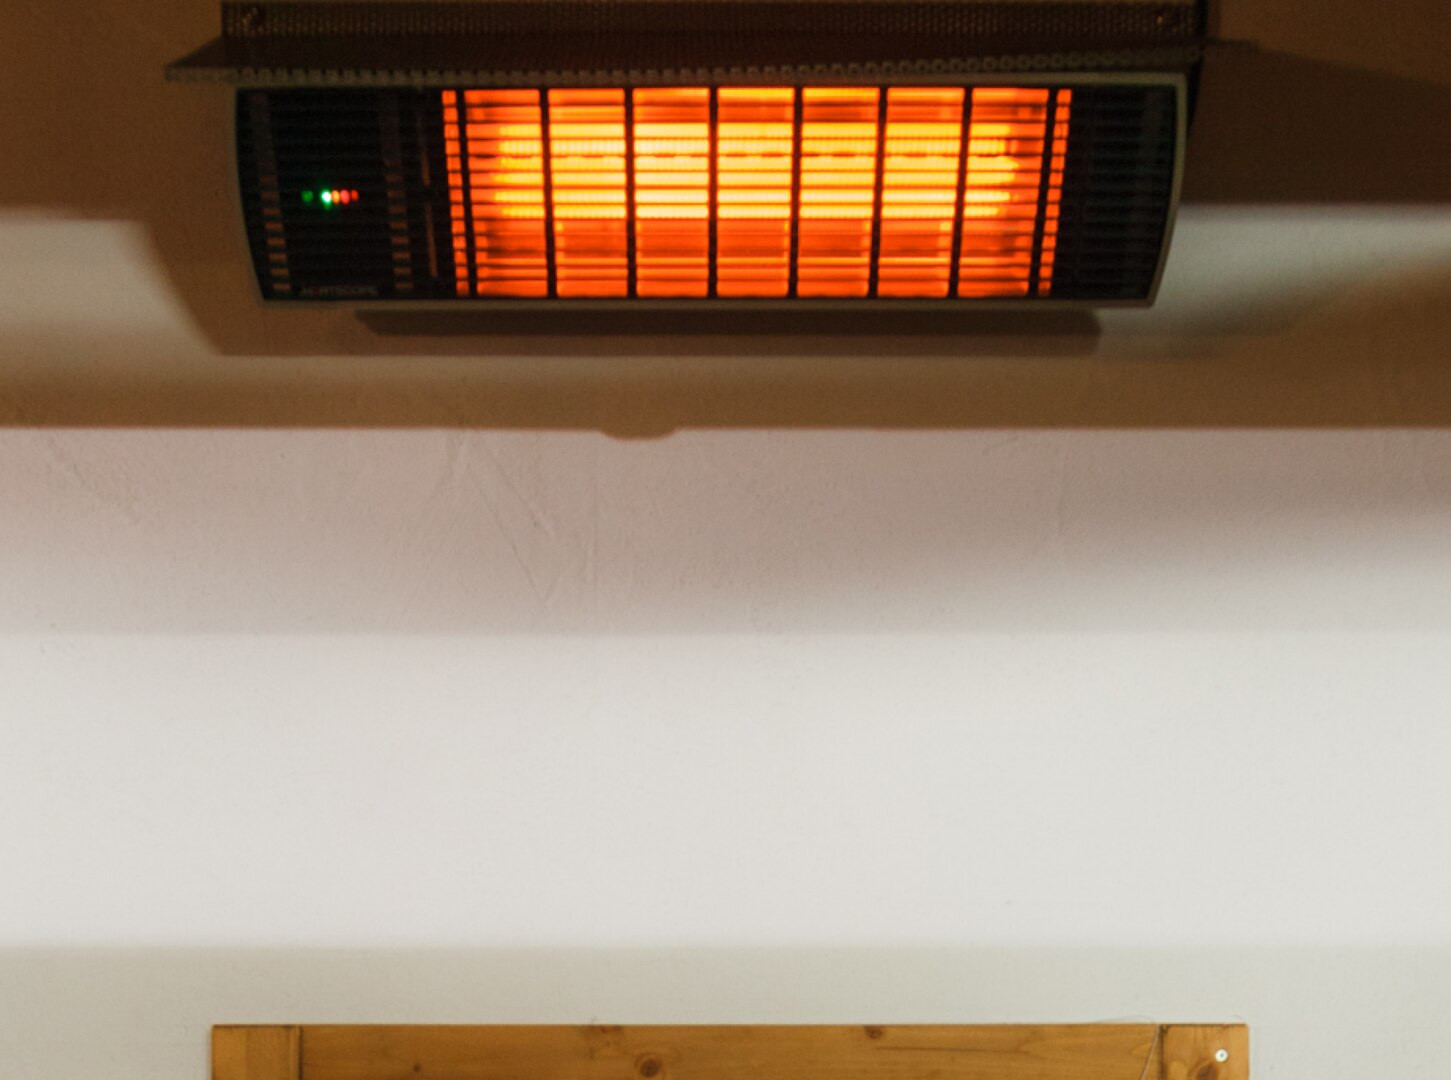 Spot-Radiant-Heater-Restaurant-2-by-Heat